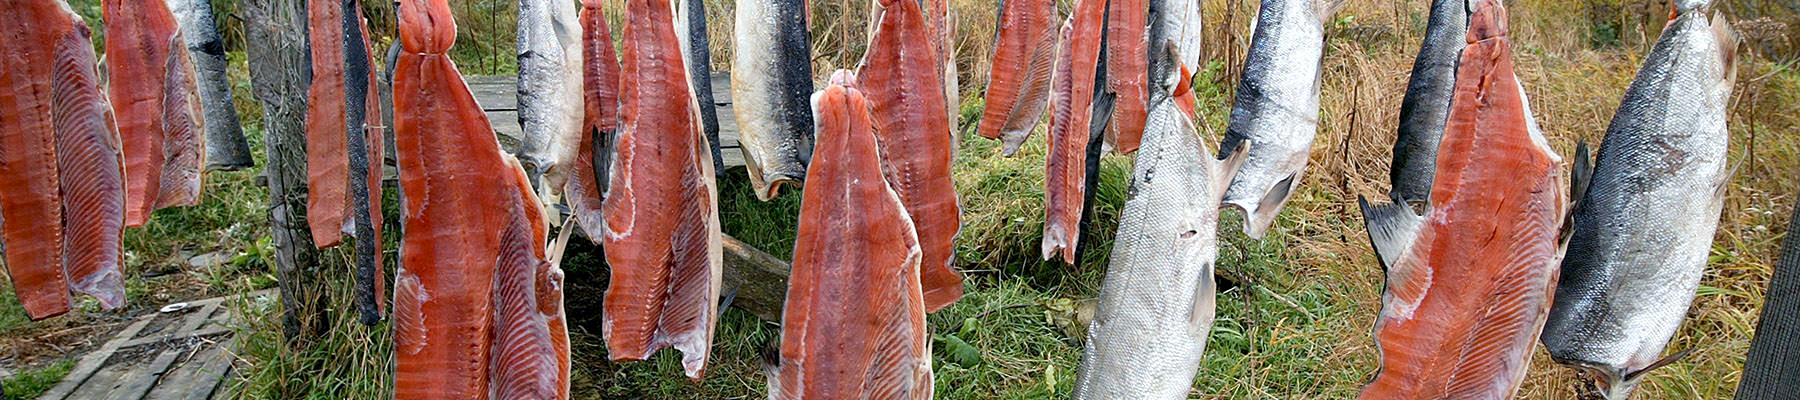 Salmons hanged for drying in the Russian Federation © Vladimir Filonov / WWF